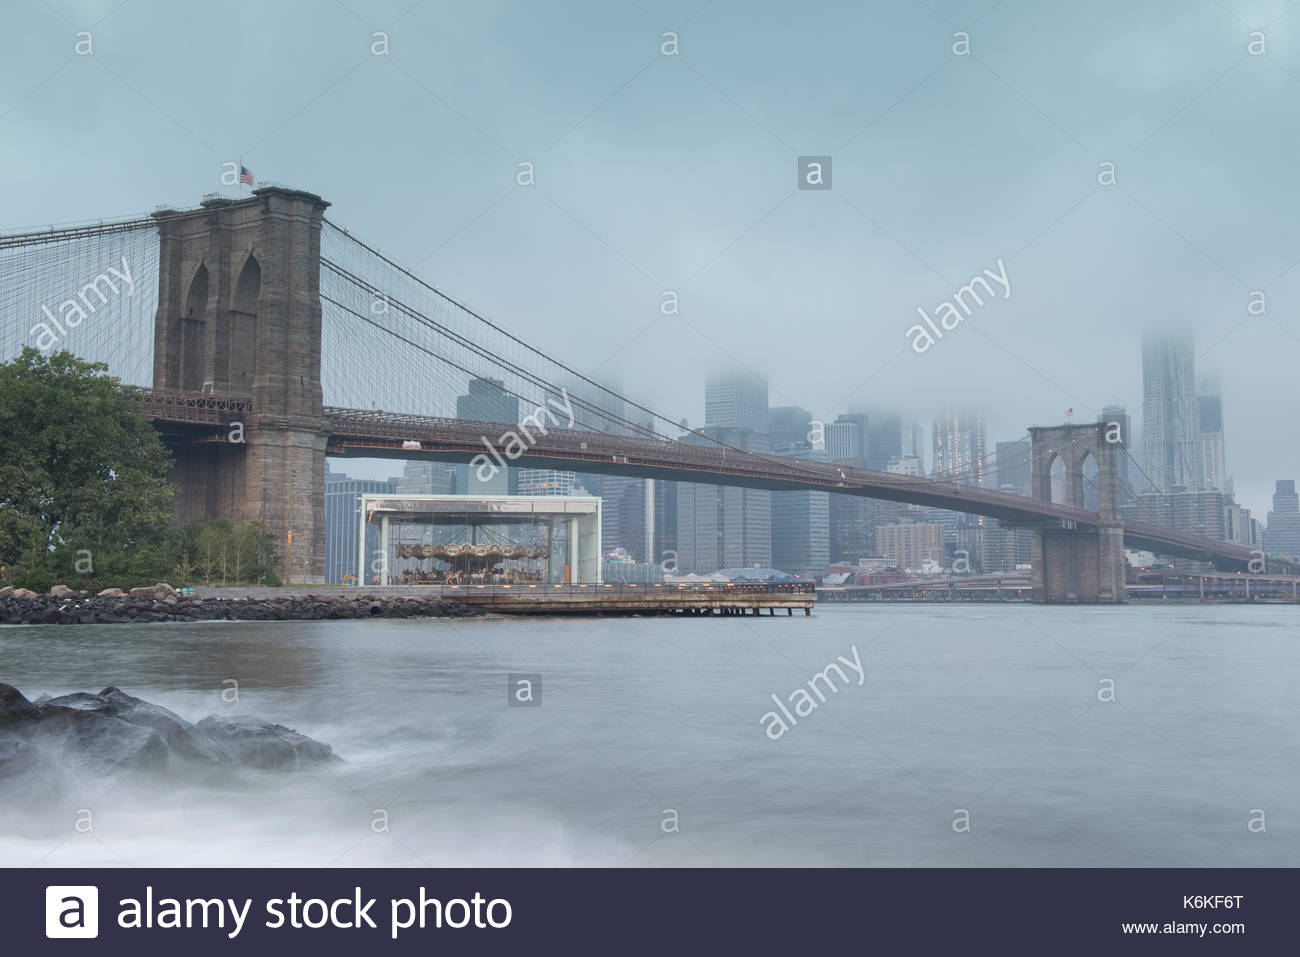 Brooklyn, Brooklyn Bridge Park, New York, USA. - Stock Image